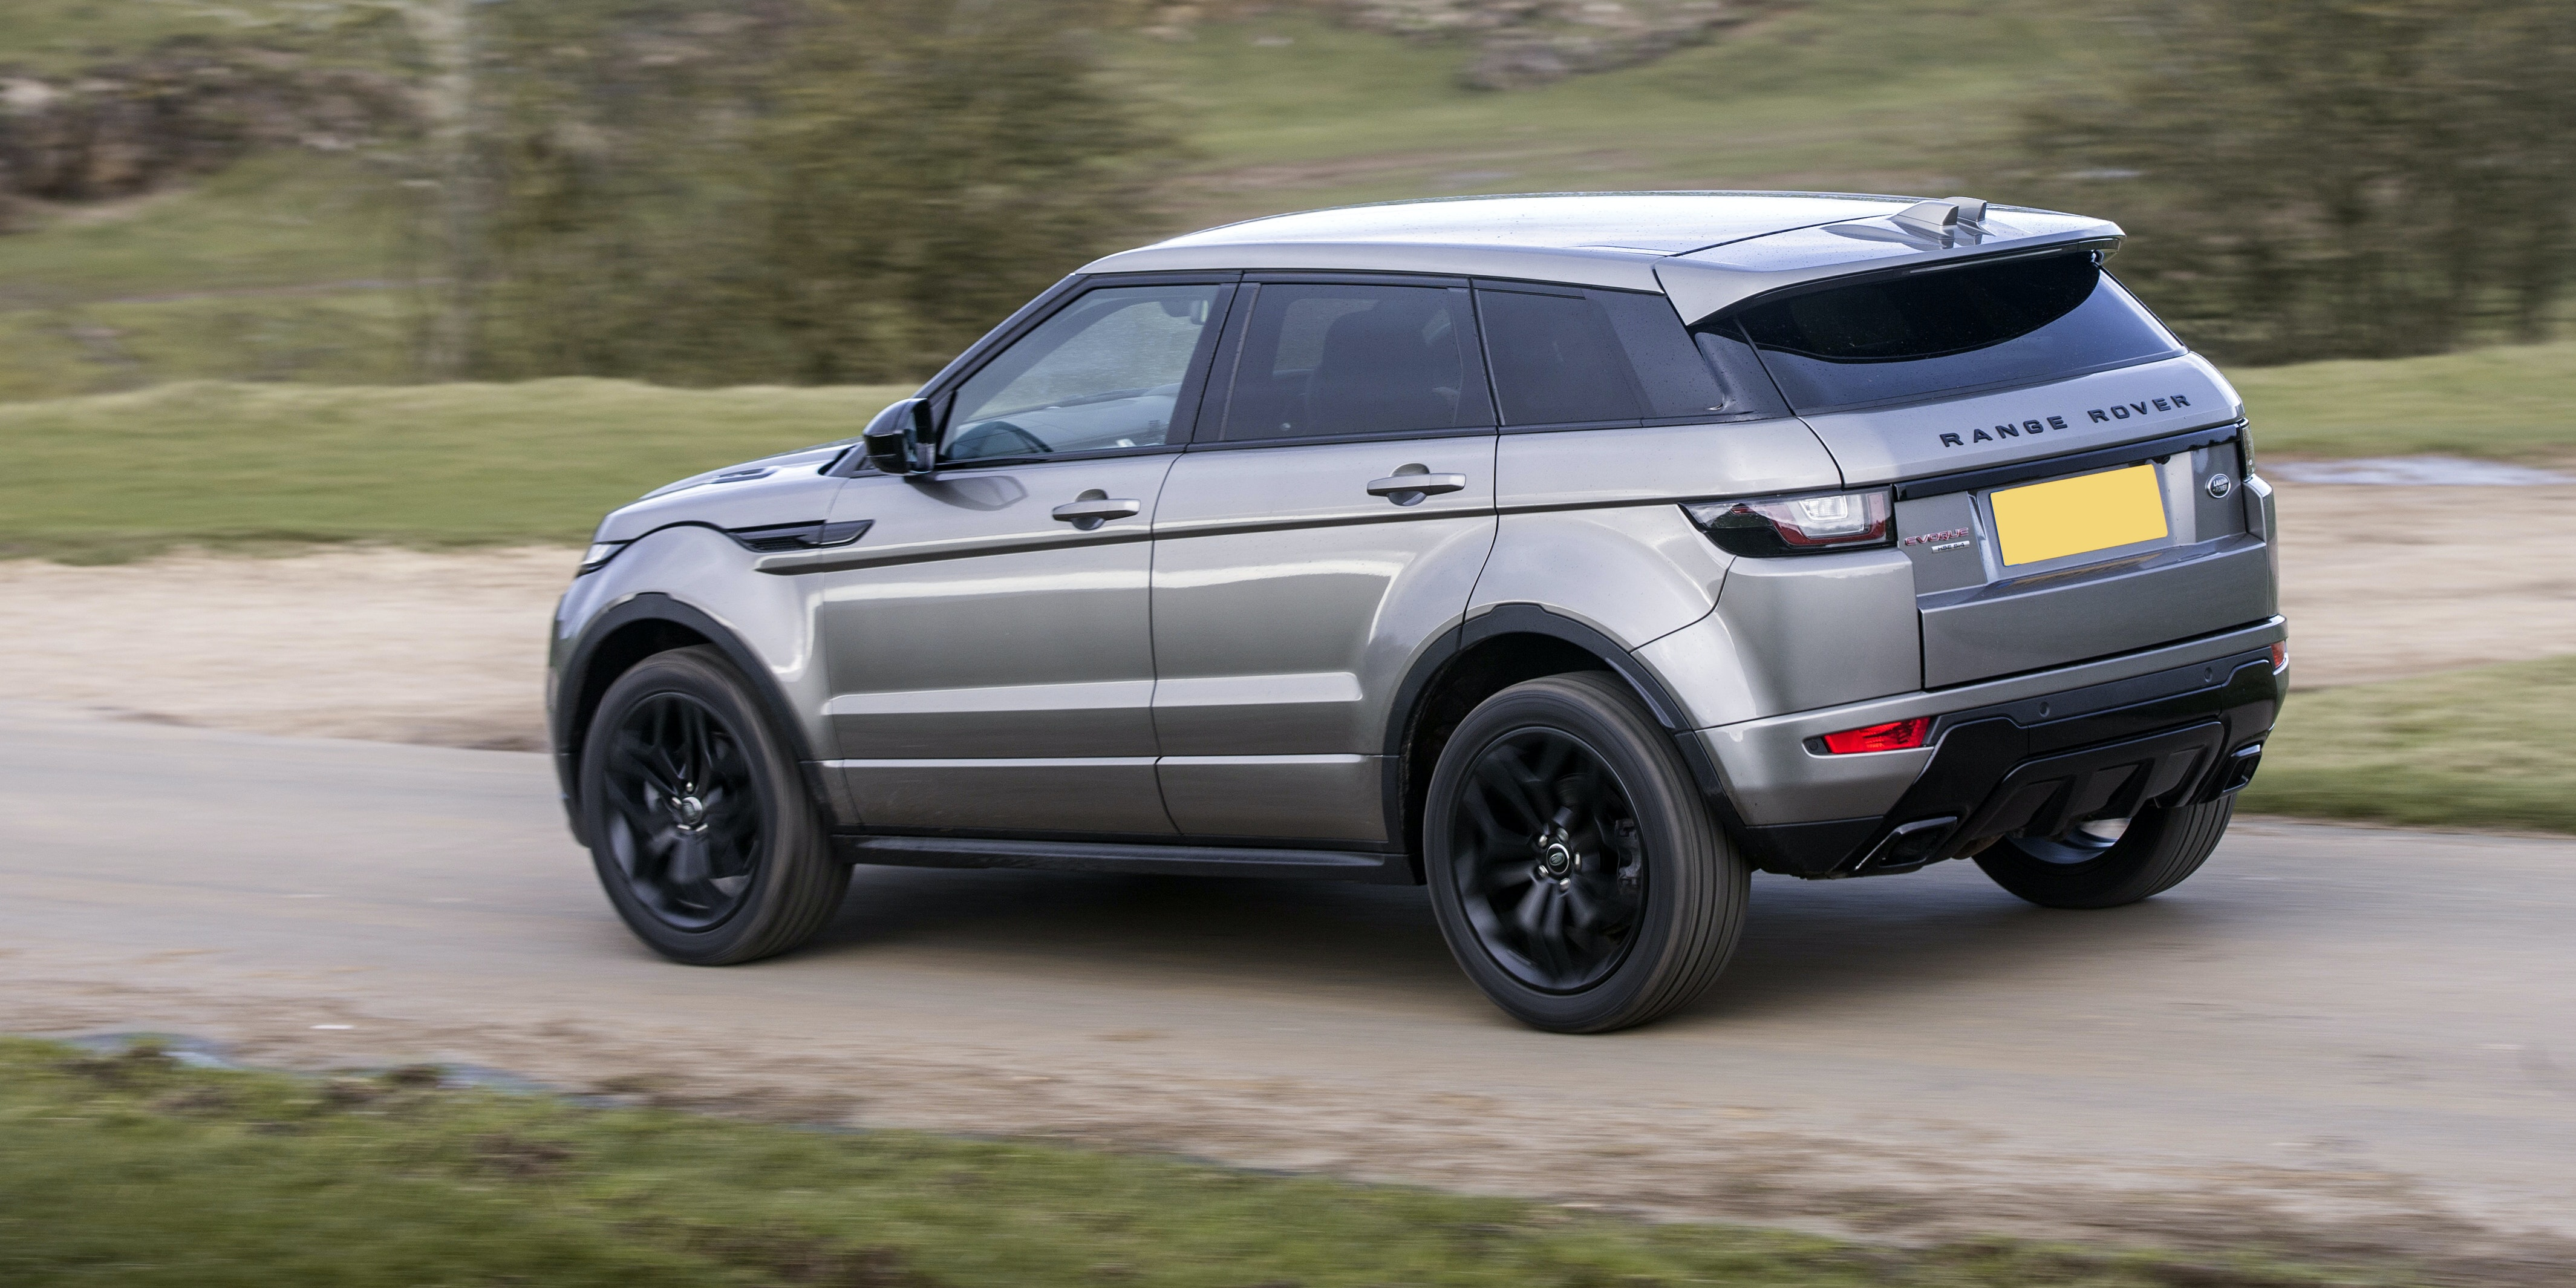 Range Rover Evoque Review Carwow